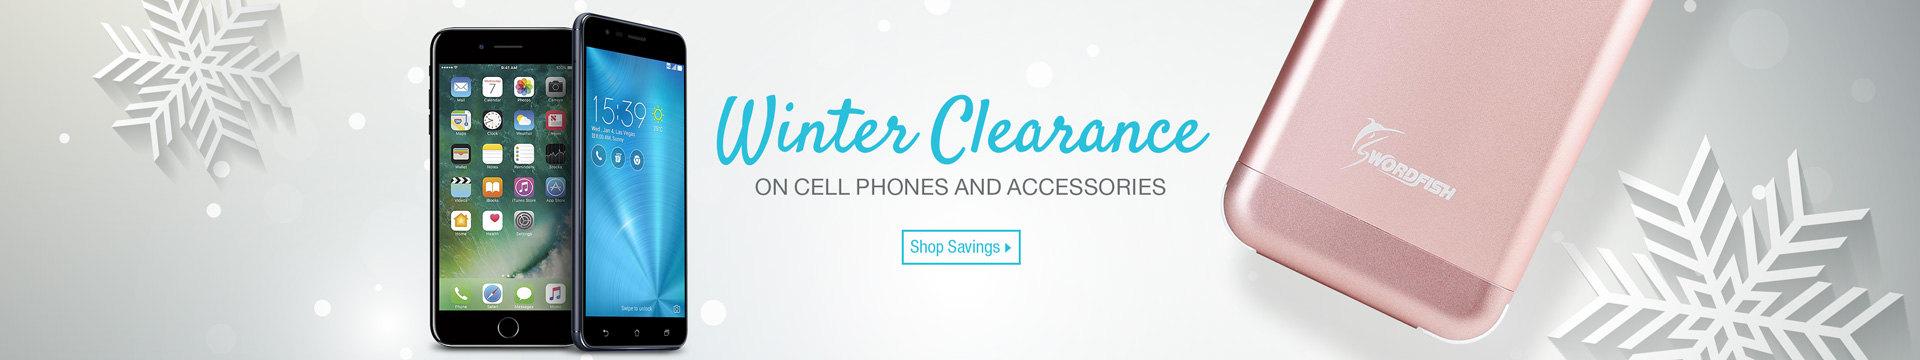 Winter Clearance on Cell Phones and Accessories